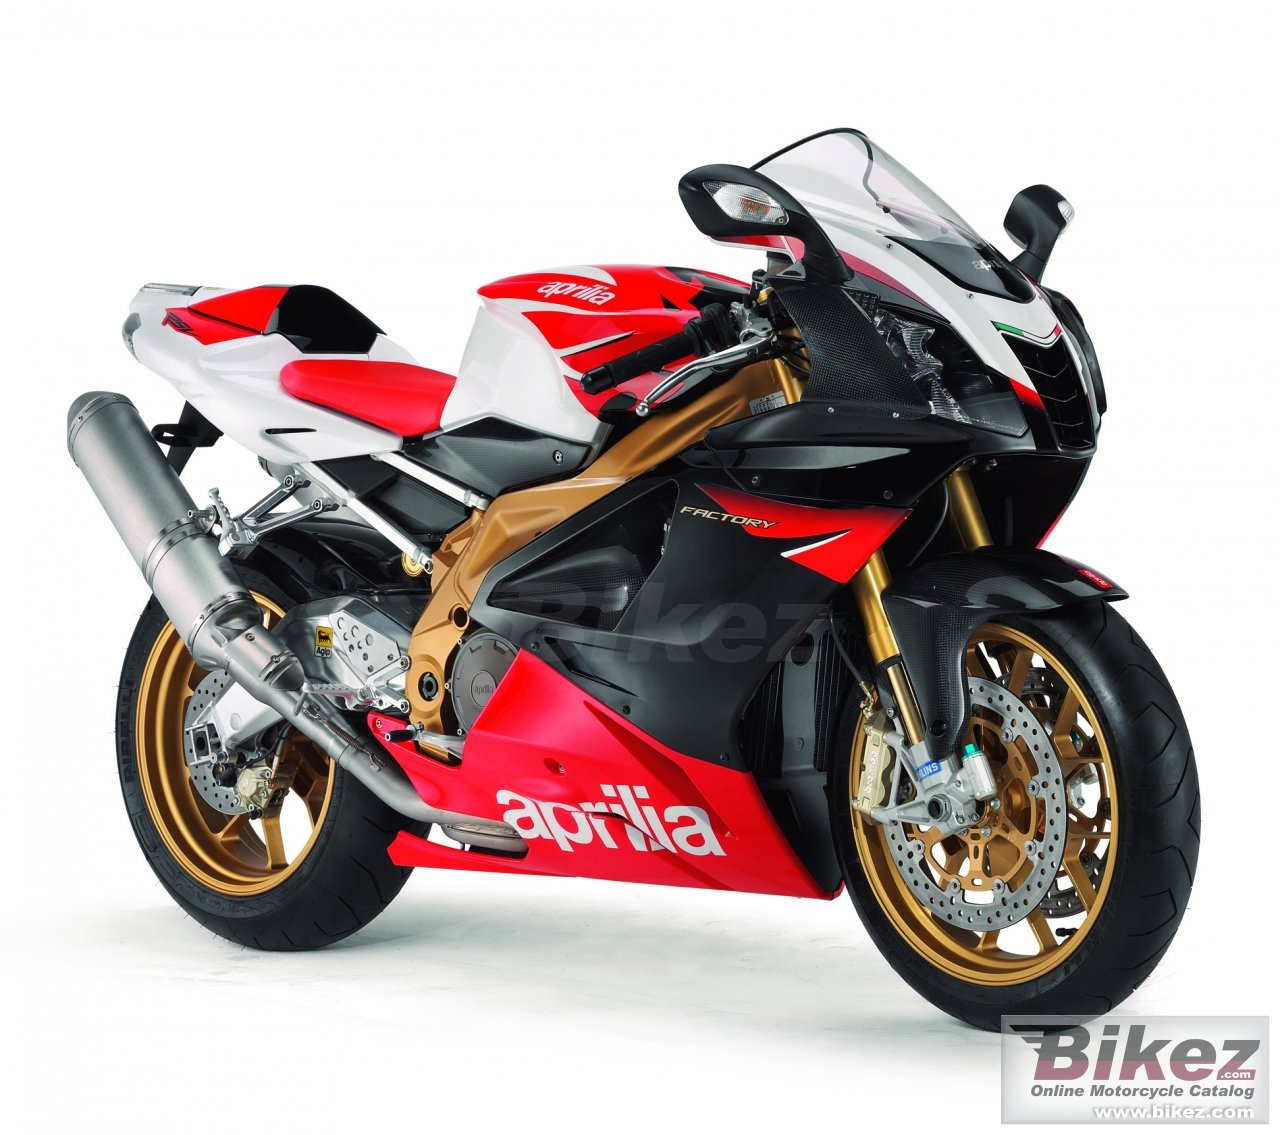 Big Aprilia rsv 1000 r factory picture and wallpaper from Bikez.com